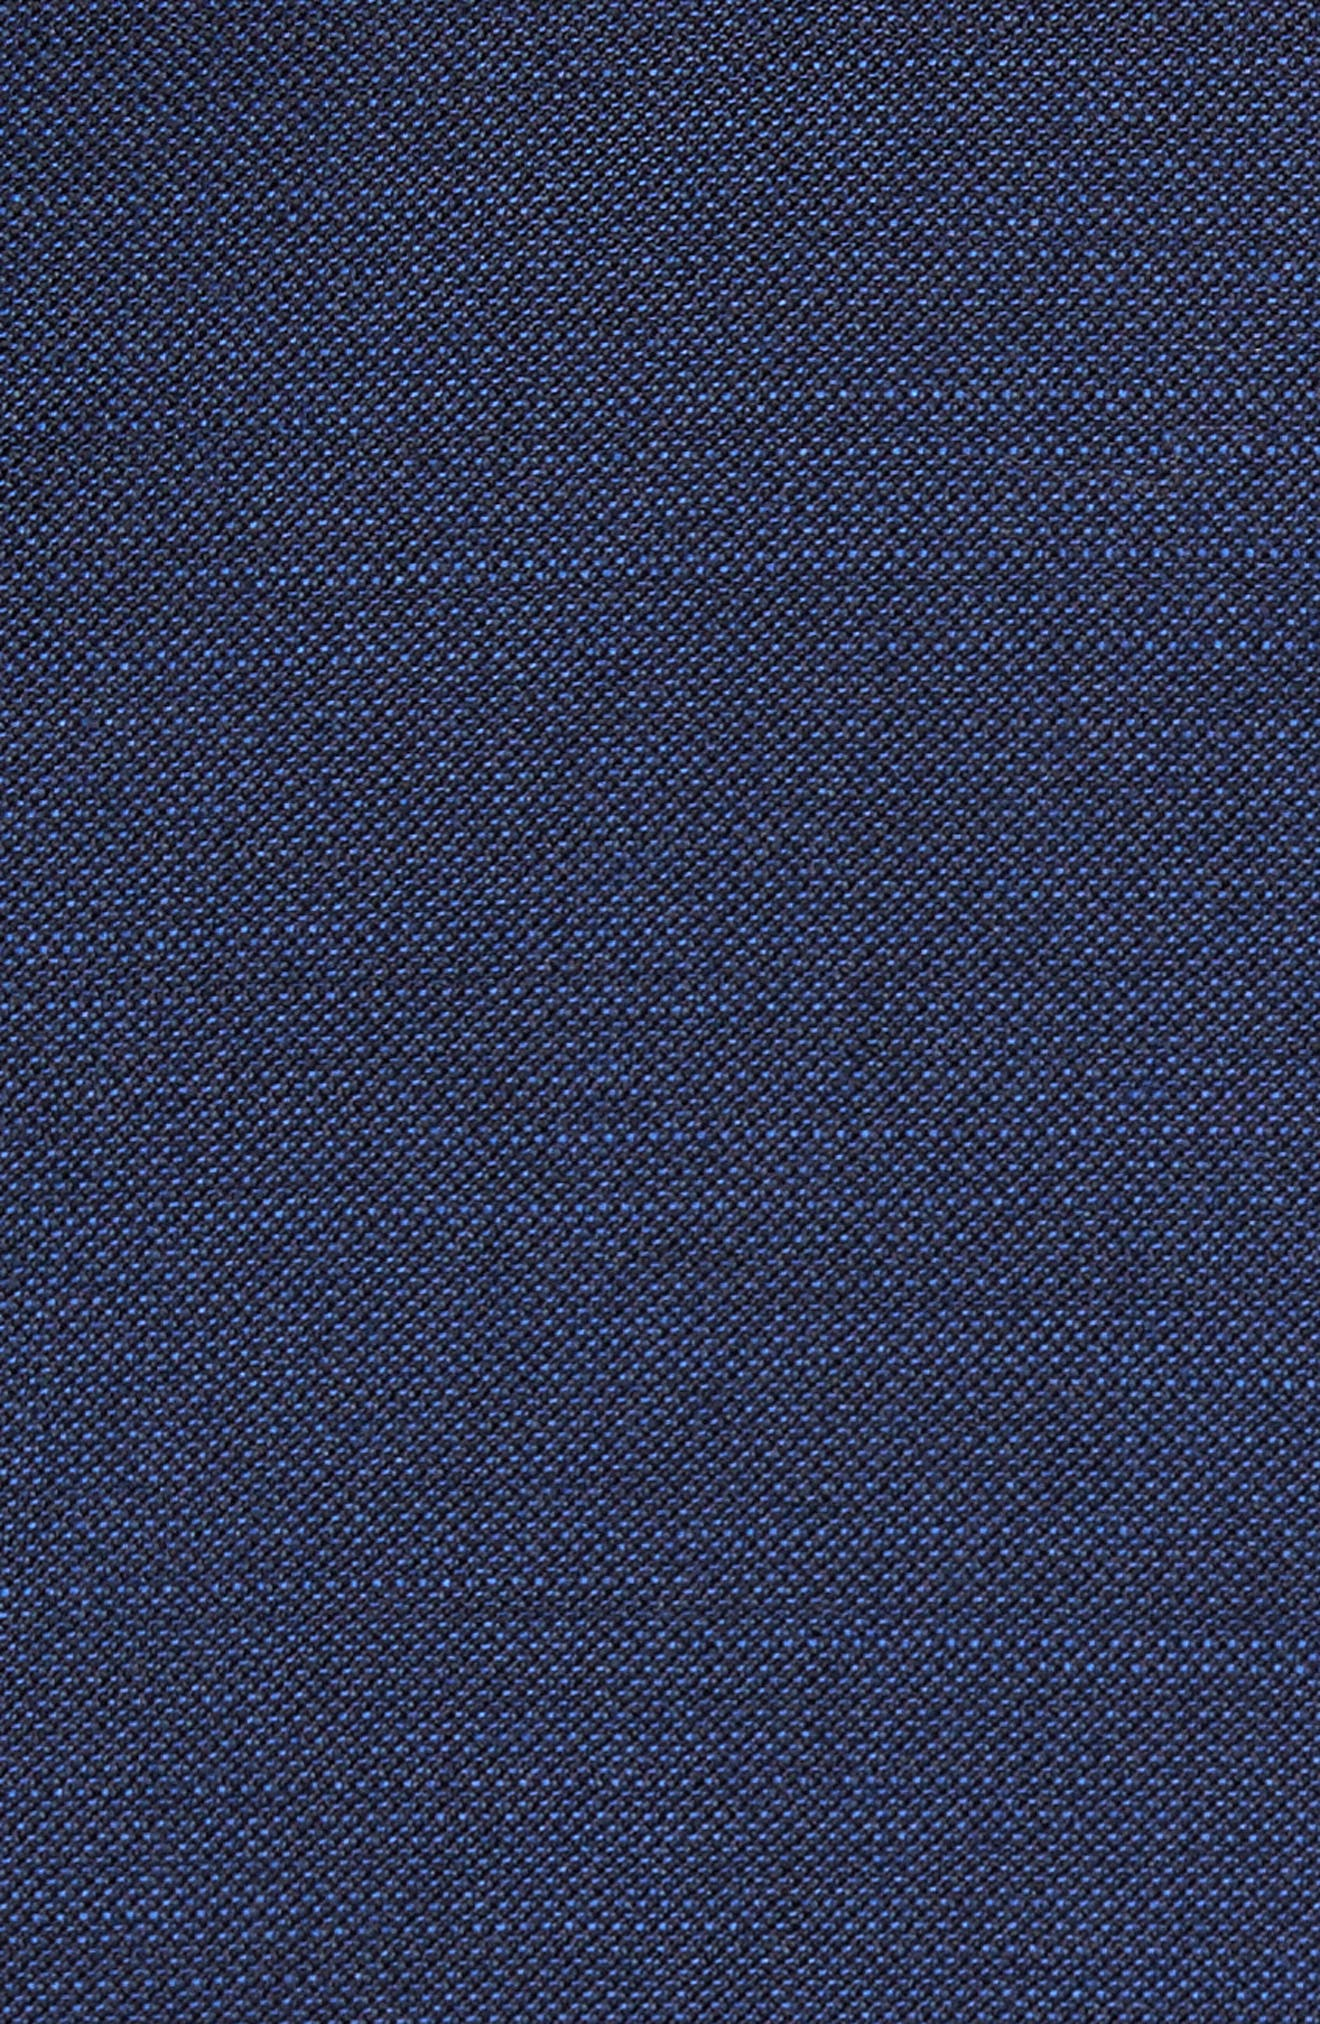 Classic Fit Solid Wool Suit,                             Alternate thumbnail 7, color,                             401